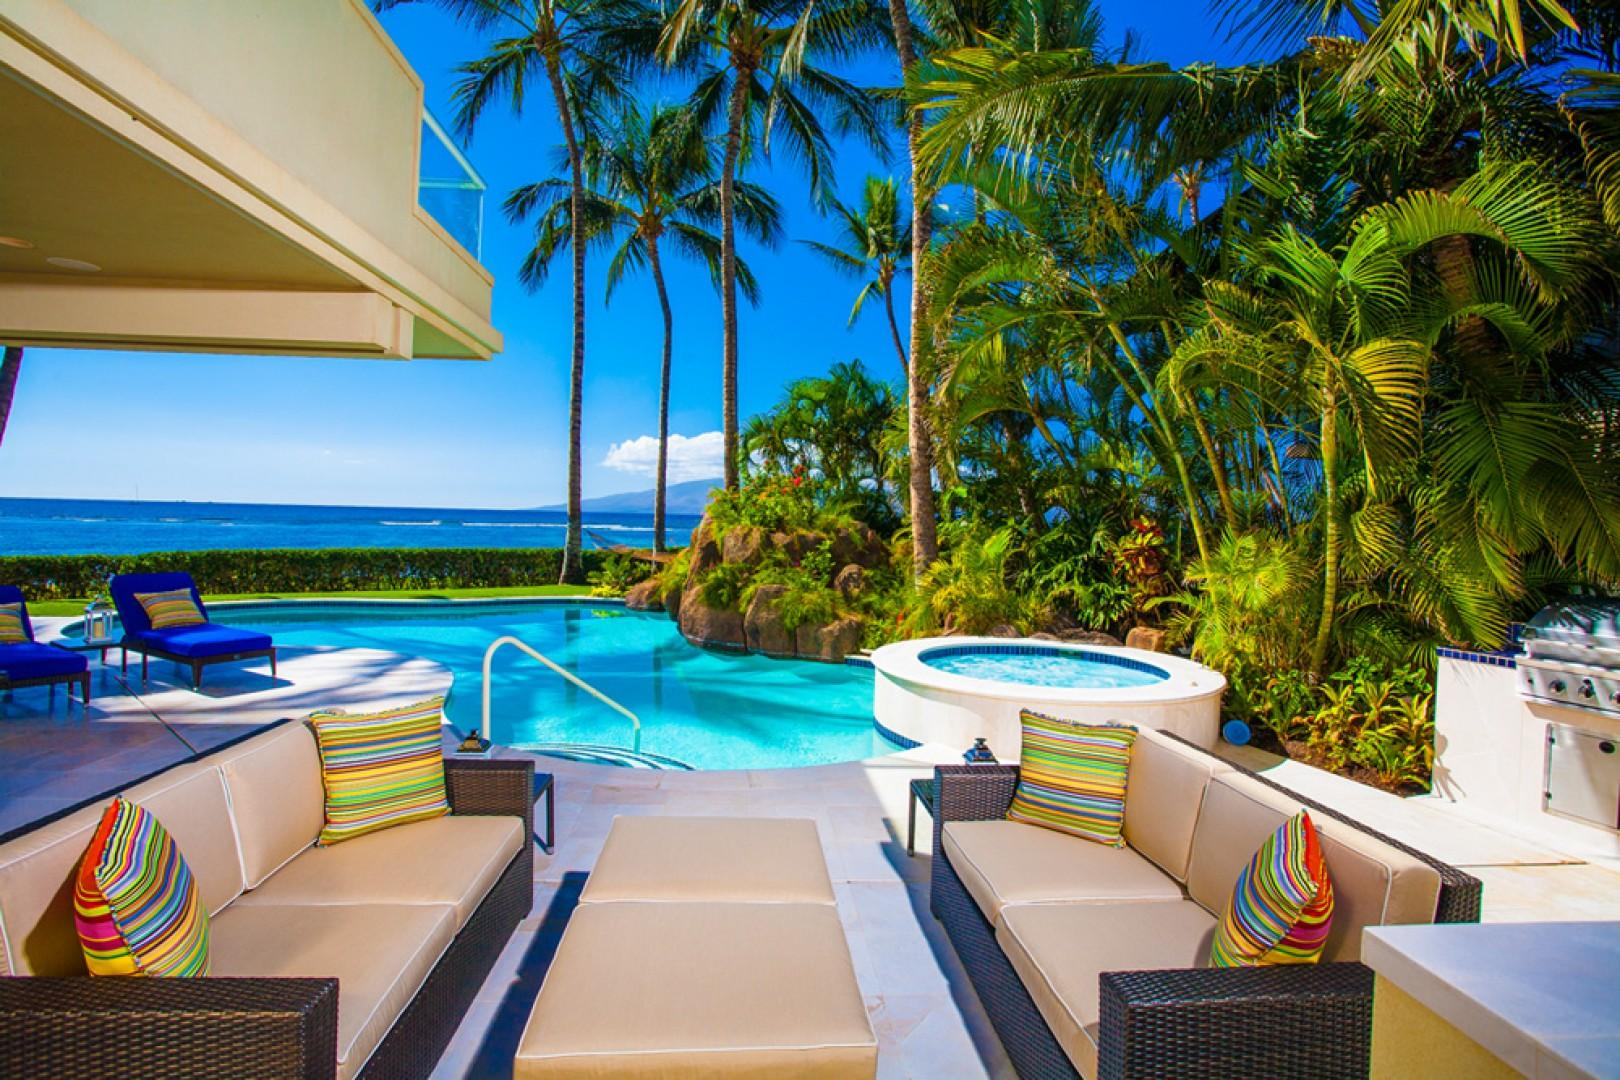 Opal Seas At Baby Beach - Covered Outdoor Pool-Side Sunset View Dining for Six with Lounging Areas